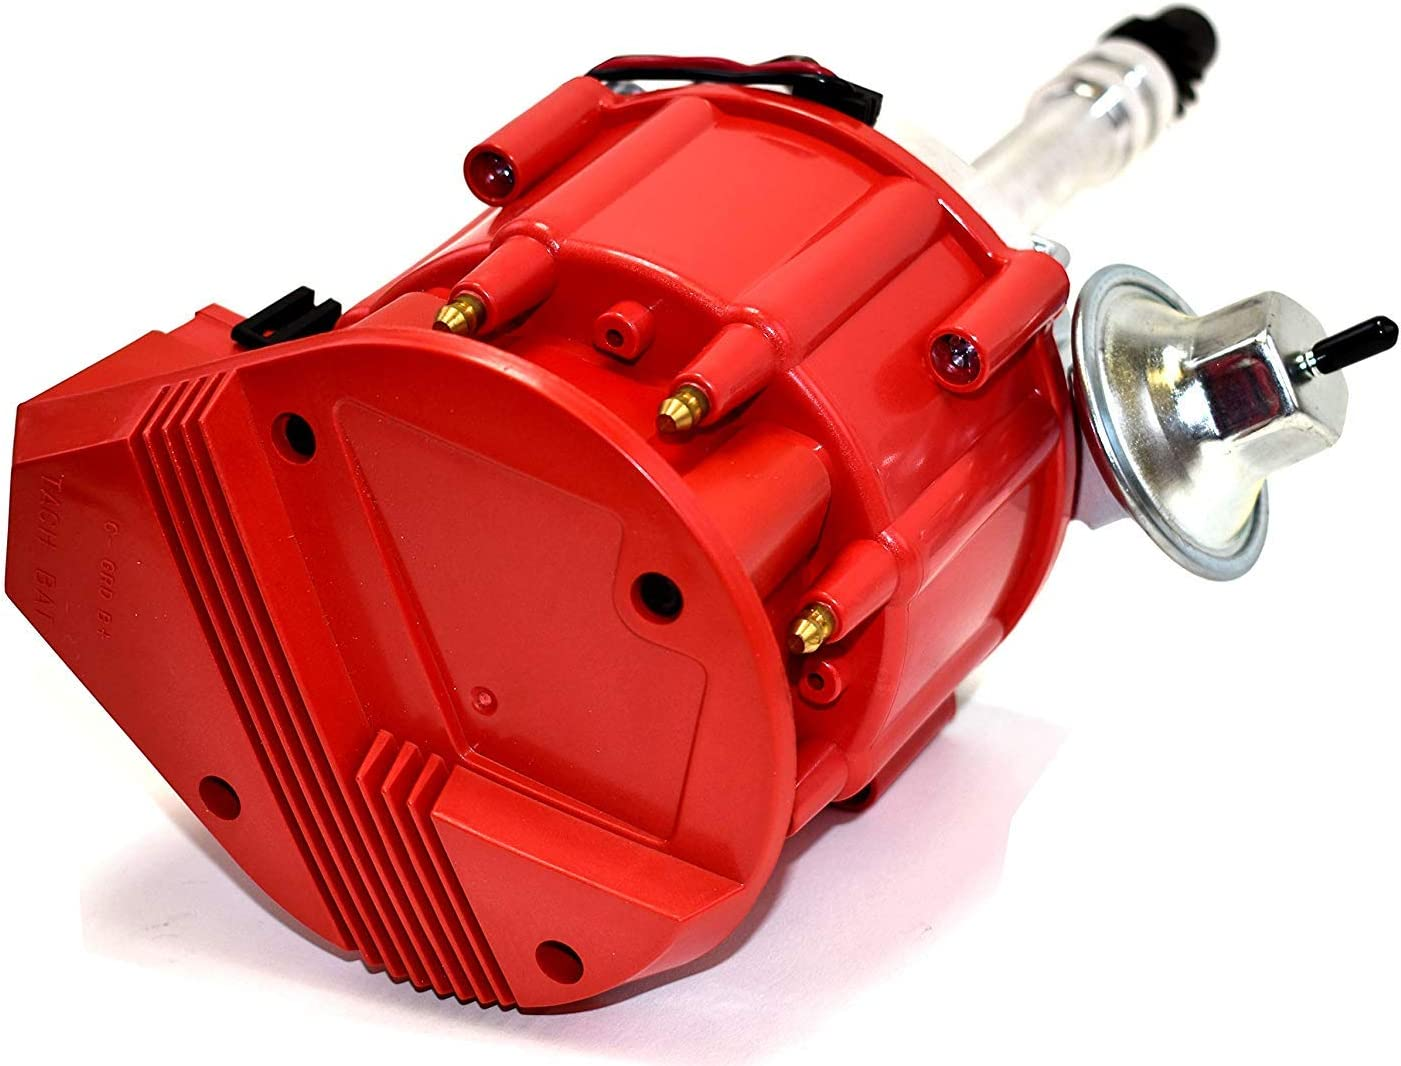 A-Team Performance HEI Distributor Red Cap w//SBC Under the Exhaust Spark Plug Wires /& HEI Pigtail Harness Compatible with Chevrolet GM GMC SBC Small Block Chevy 262 265 267 283 302 307 327 383 400